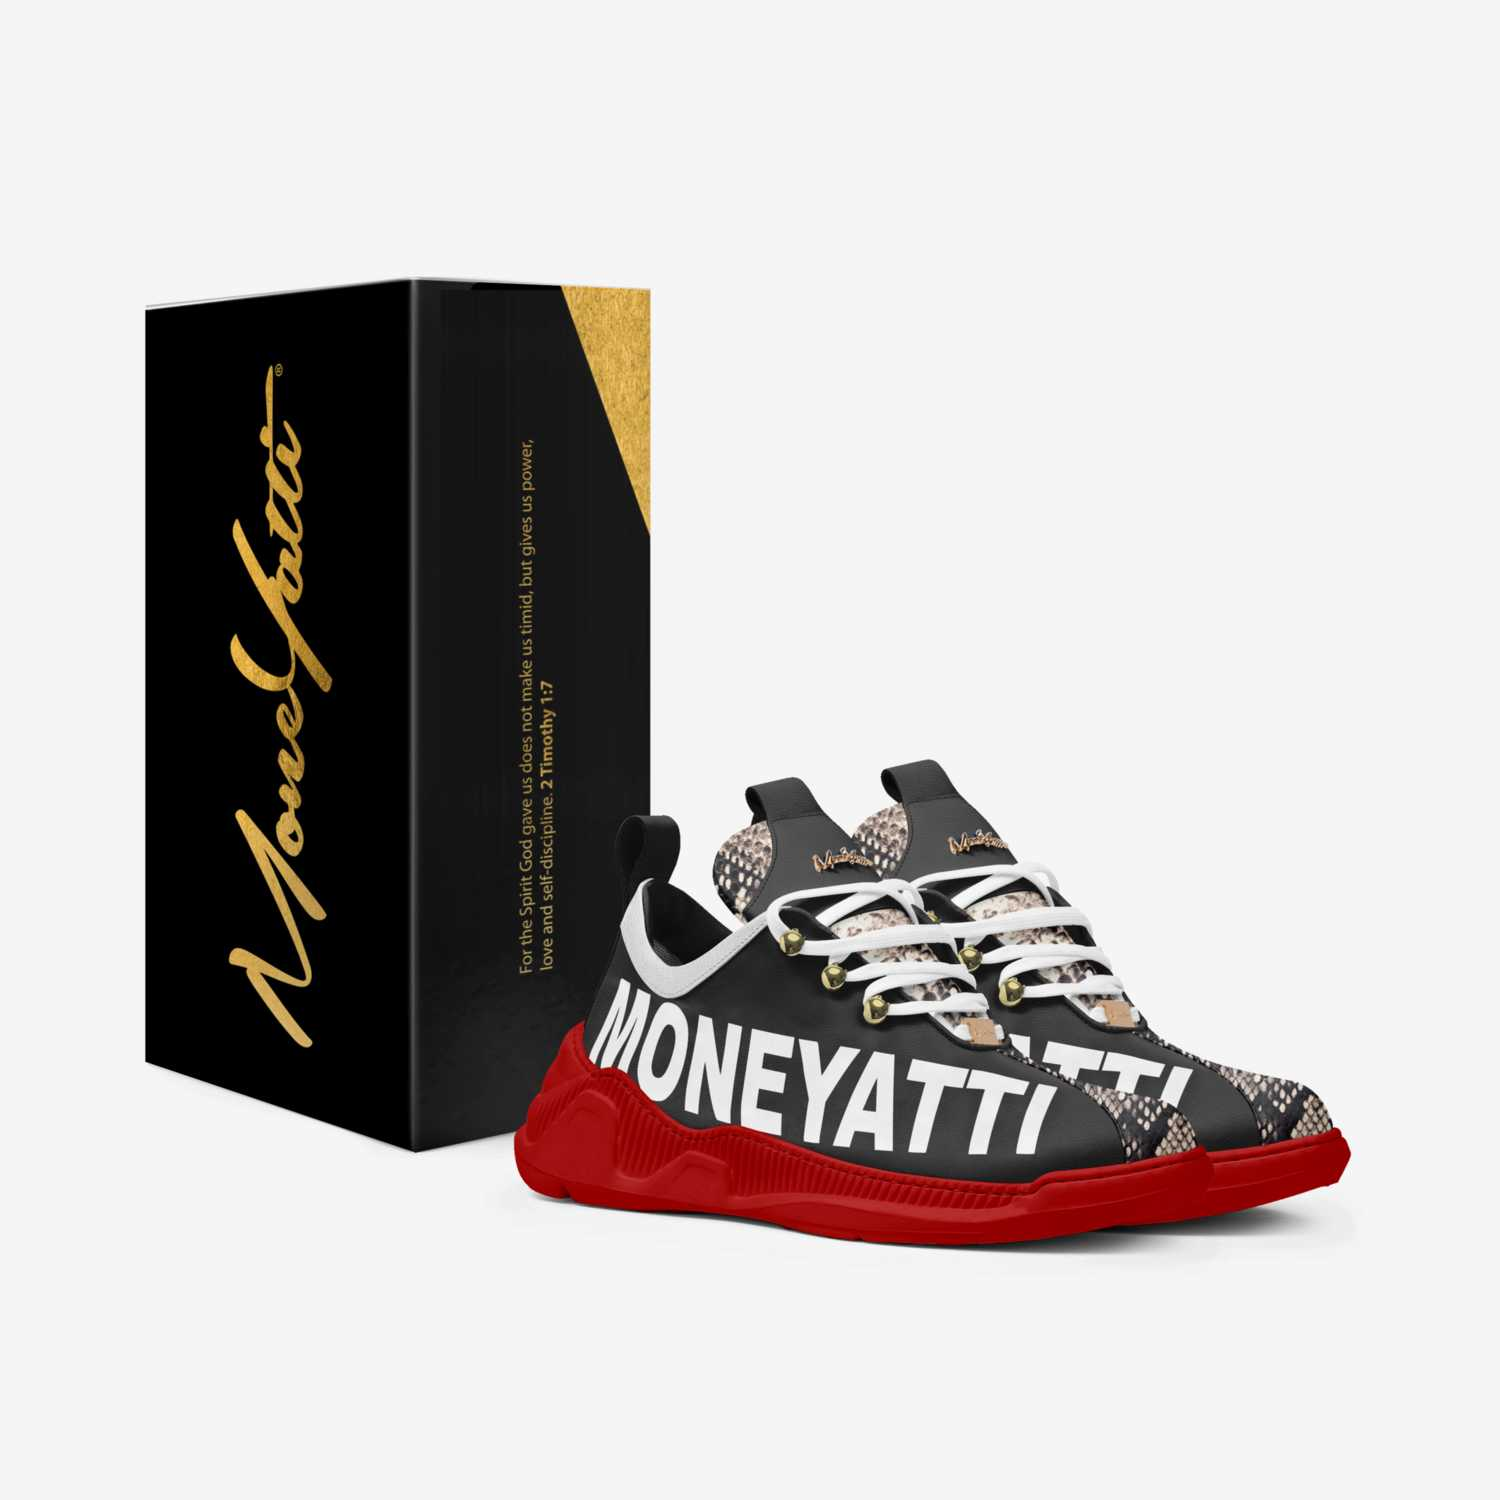 SIG12 custom made in Italy shoes by Moneyatti Brand   Box view